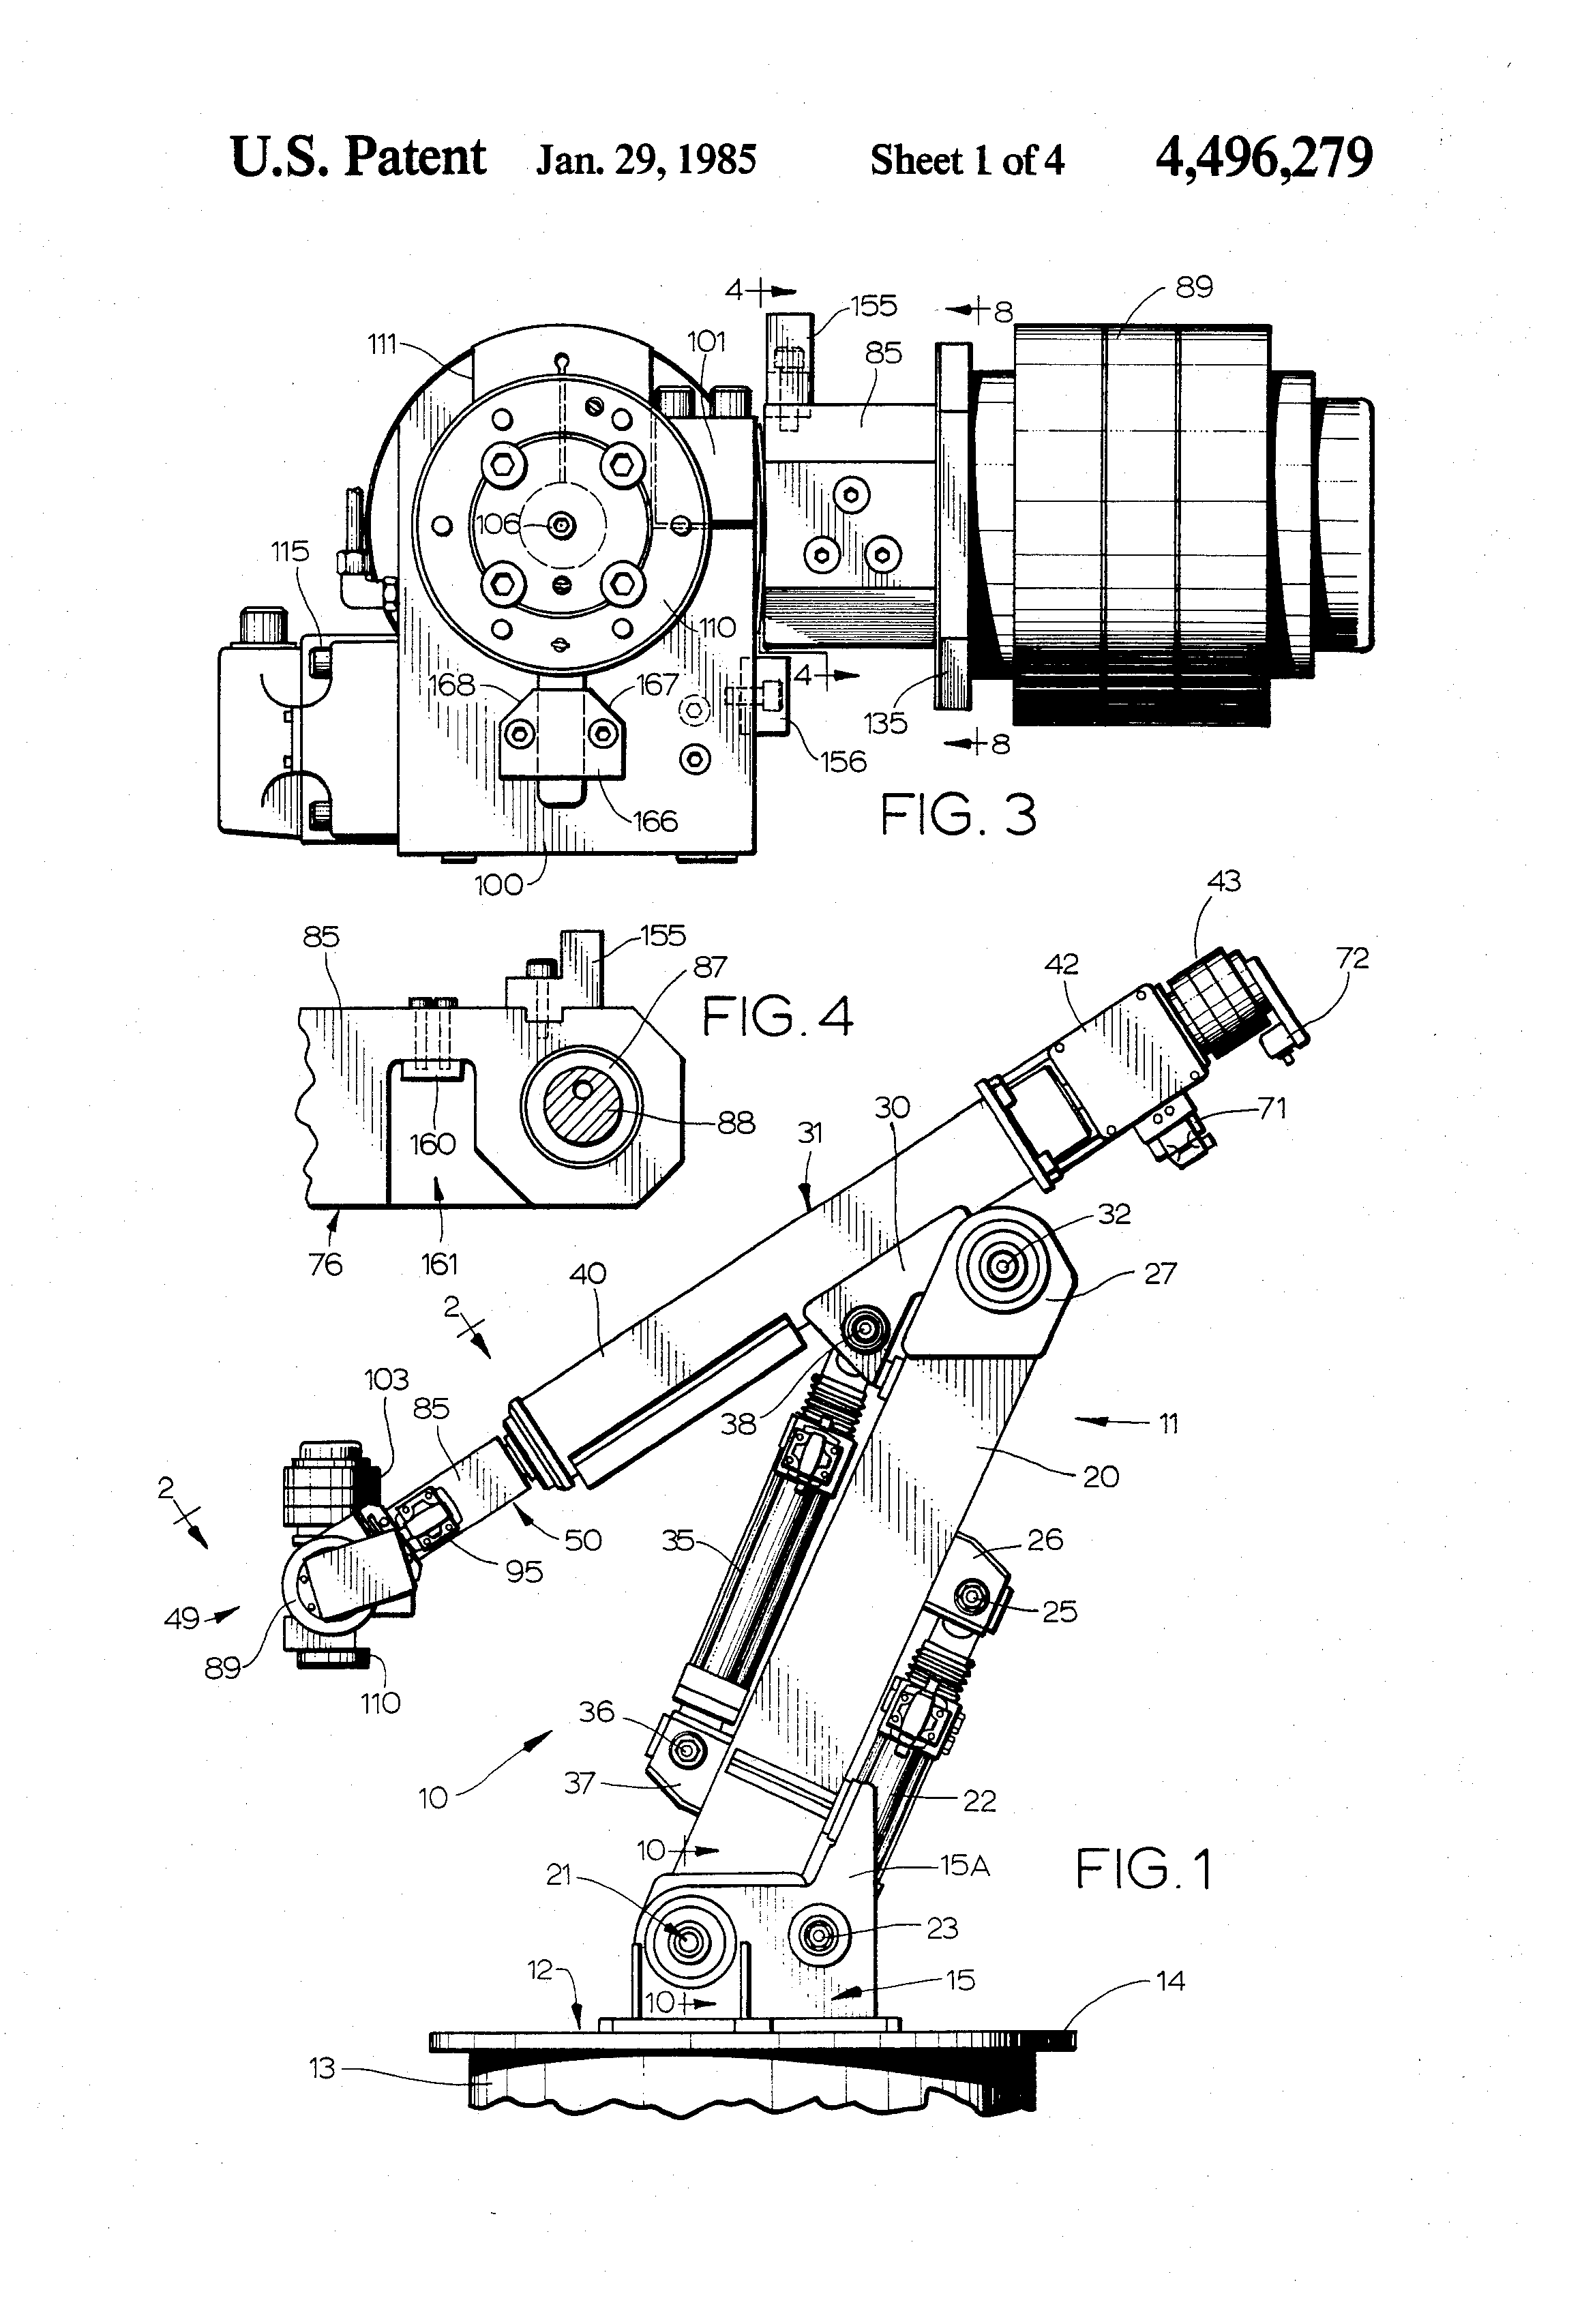 patent us4496279 - robot arm and wrist assembly